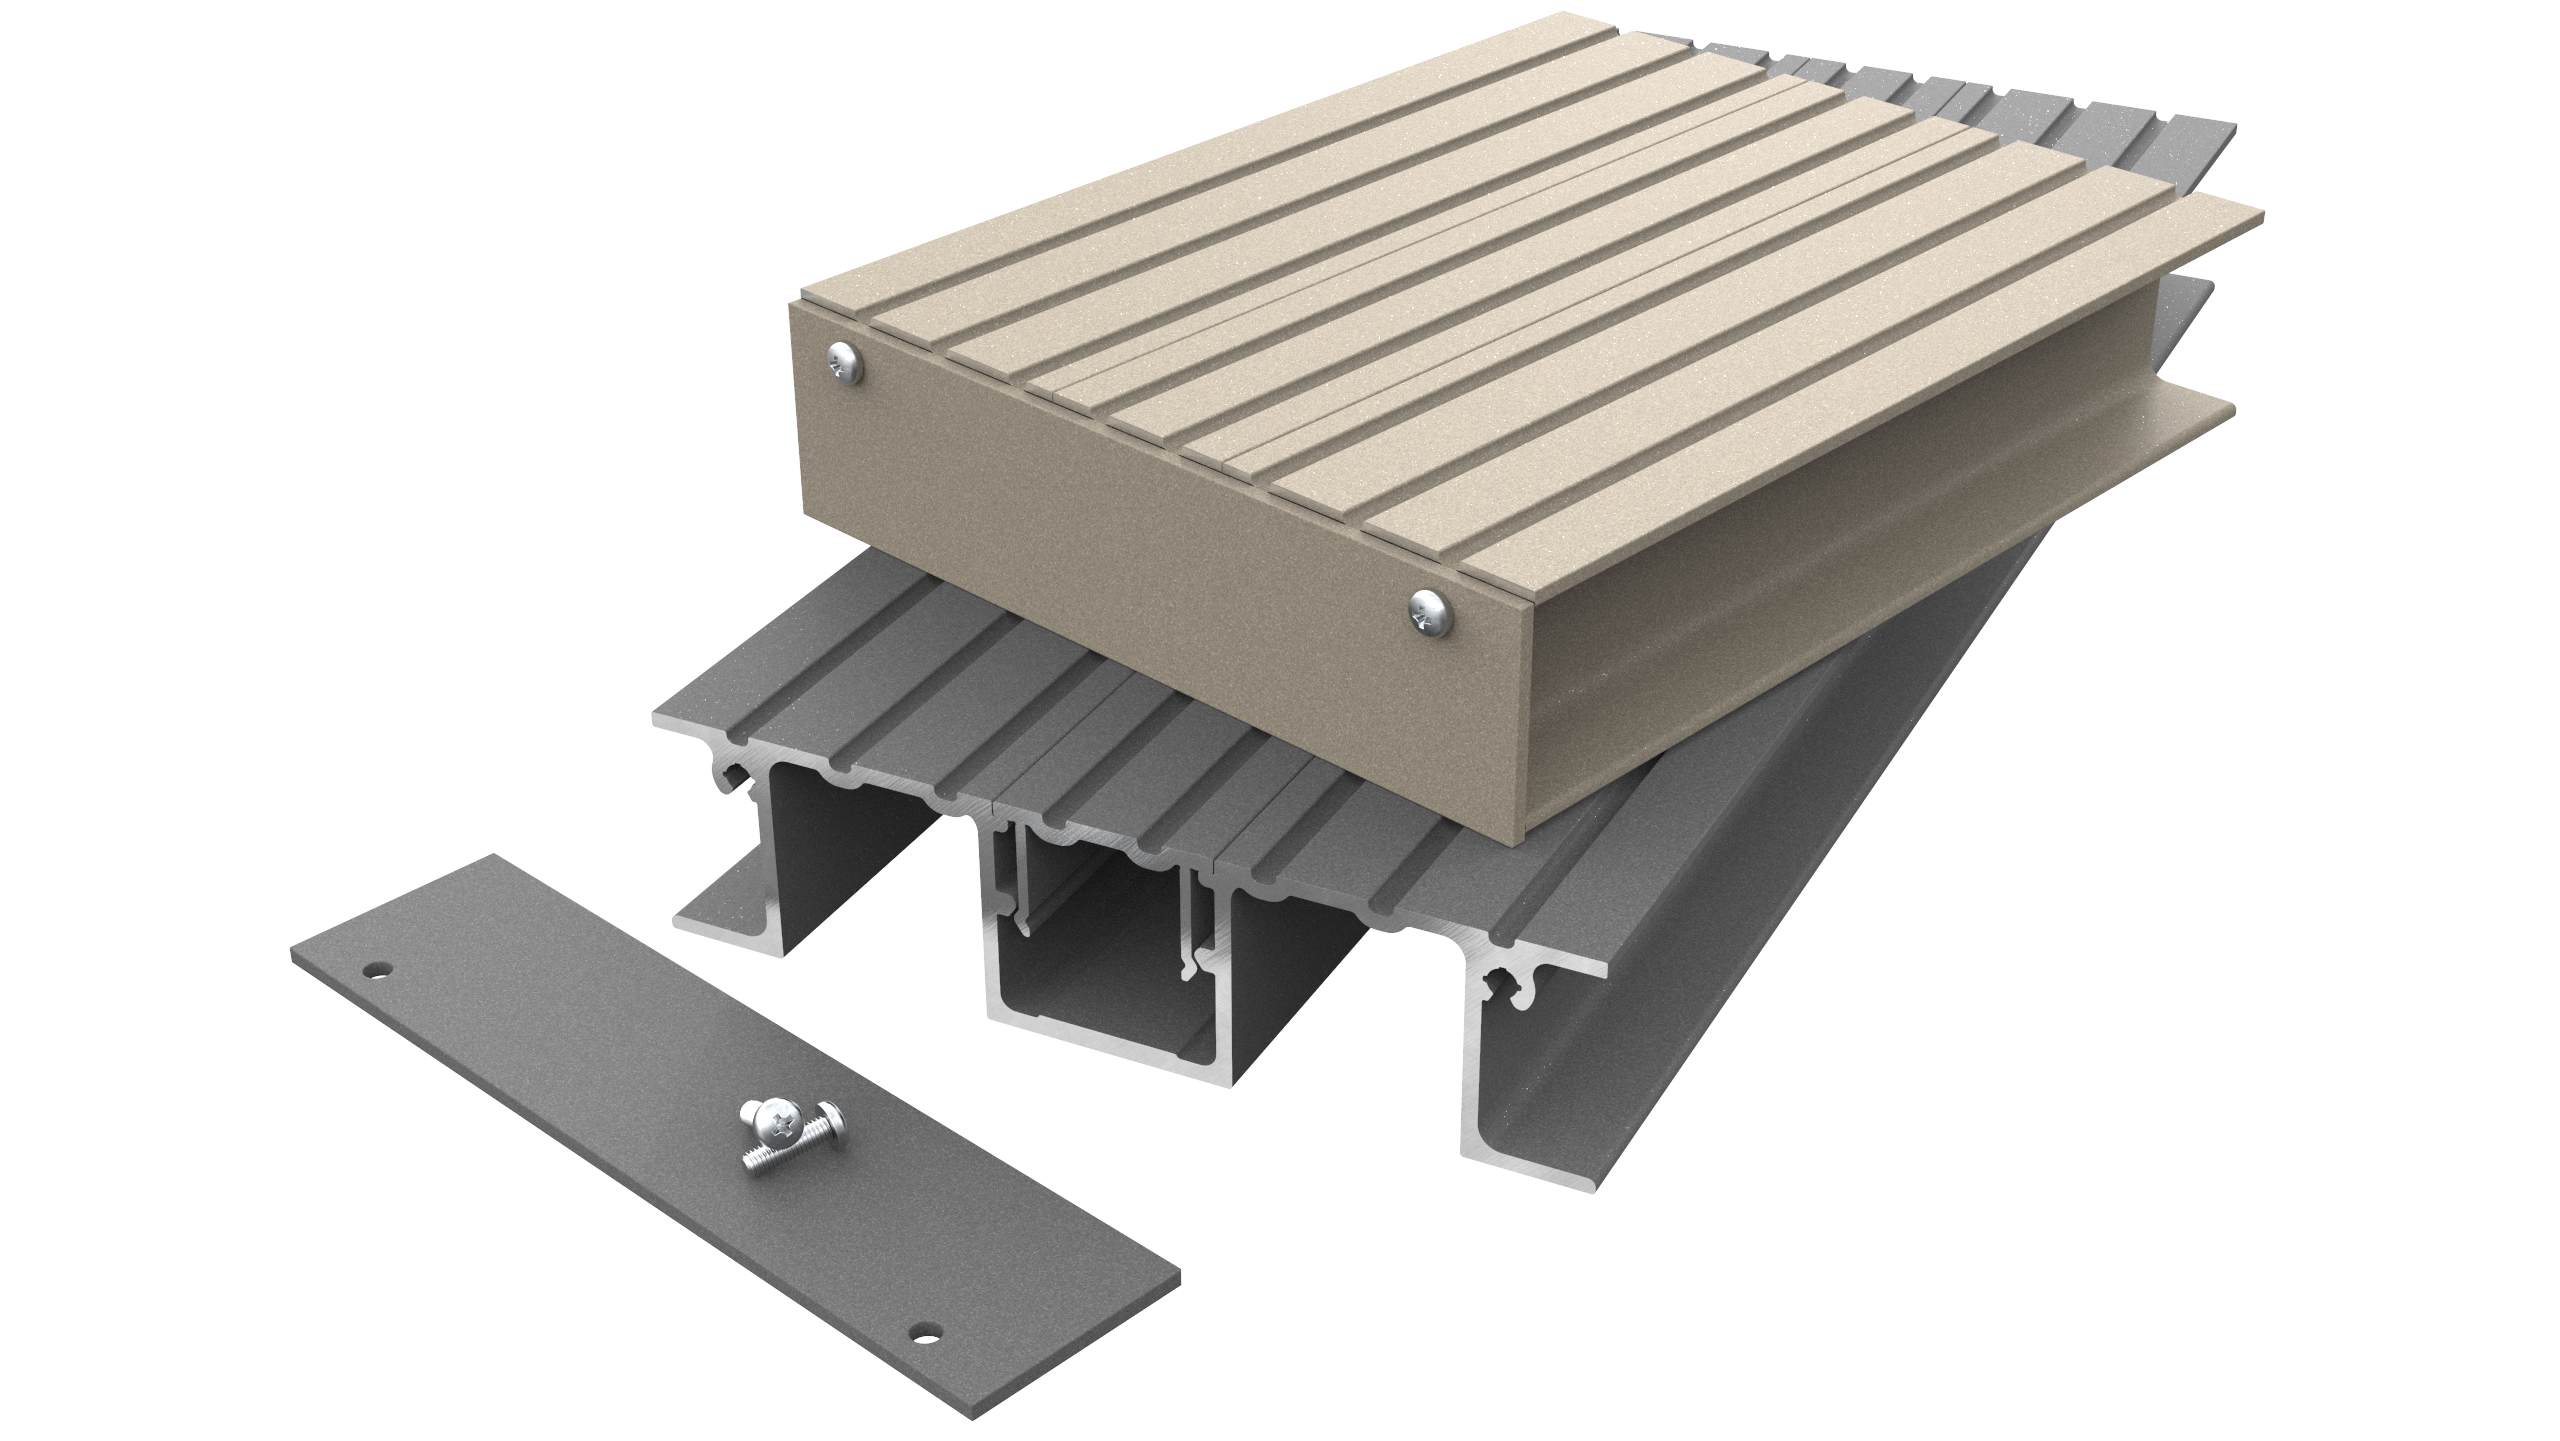 Detail of AliDeck's Senior Balcony Board Decking Product